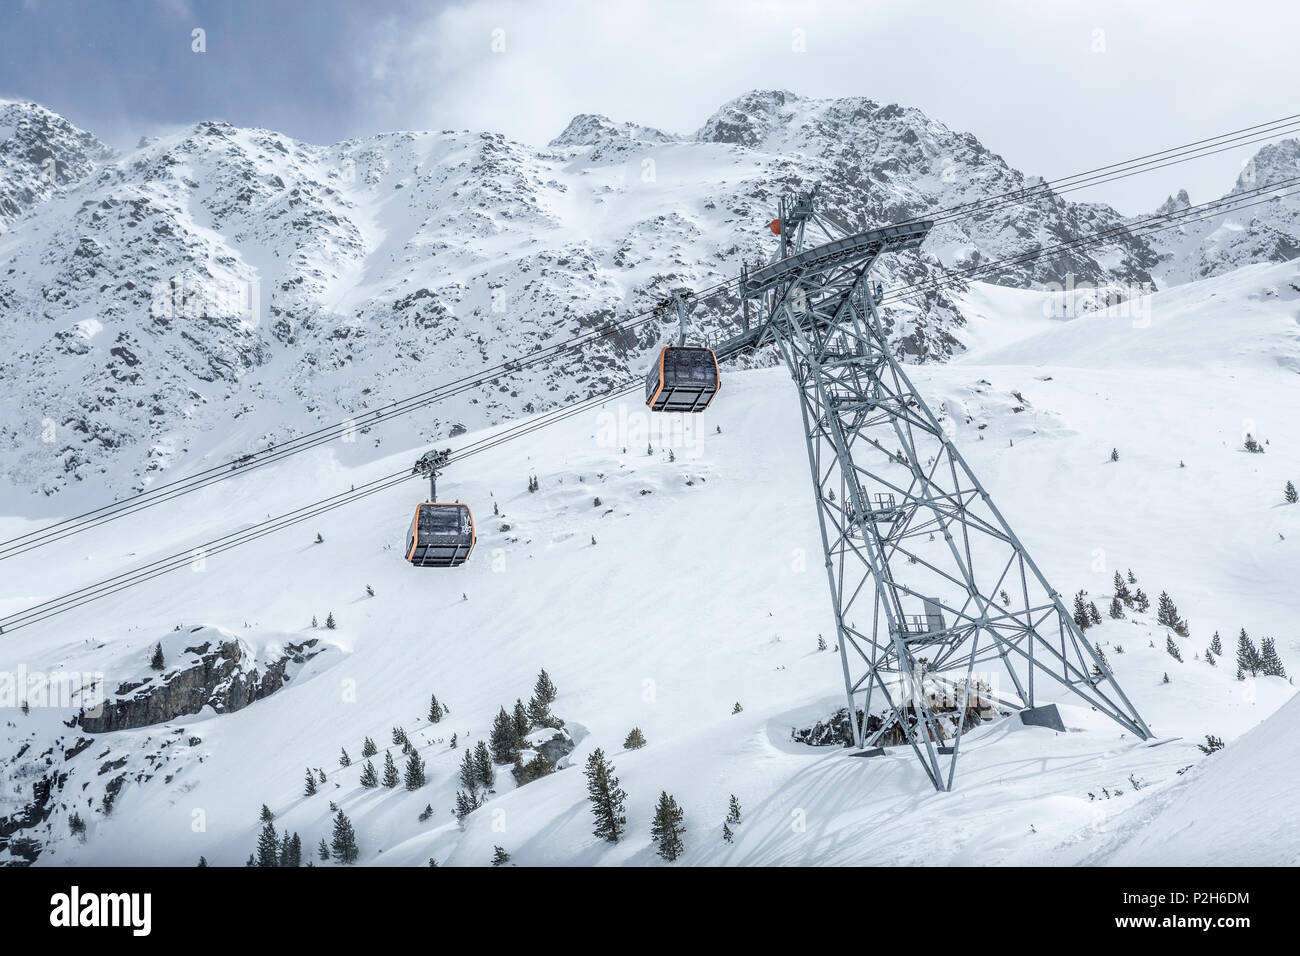 Gondolas of cableway at Stubai Glacier ski resort with snowy mountains as background, Neustift im Stubaital, Austrian Alps, Tyrol, Austria - Stock Image